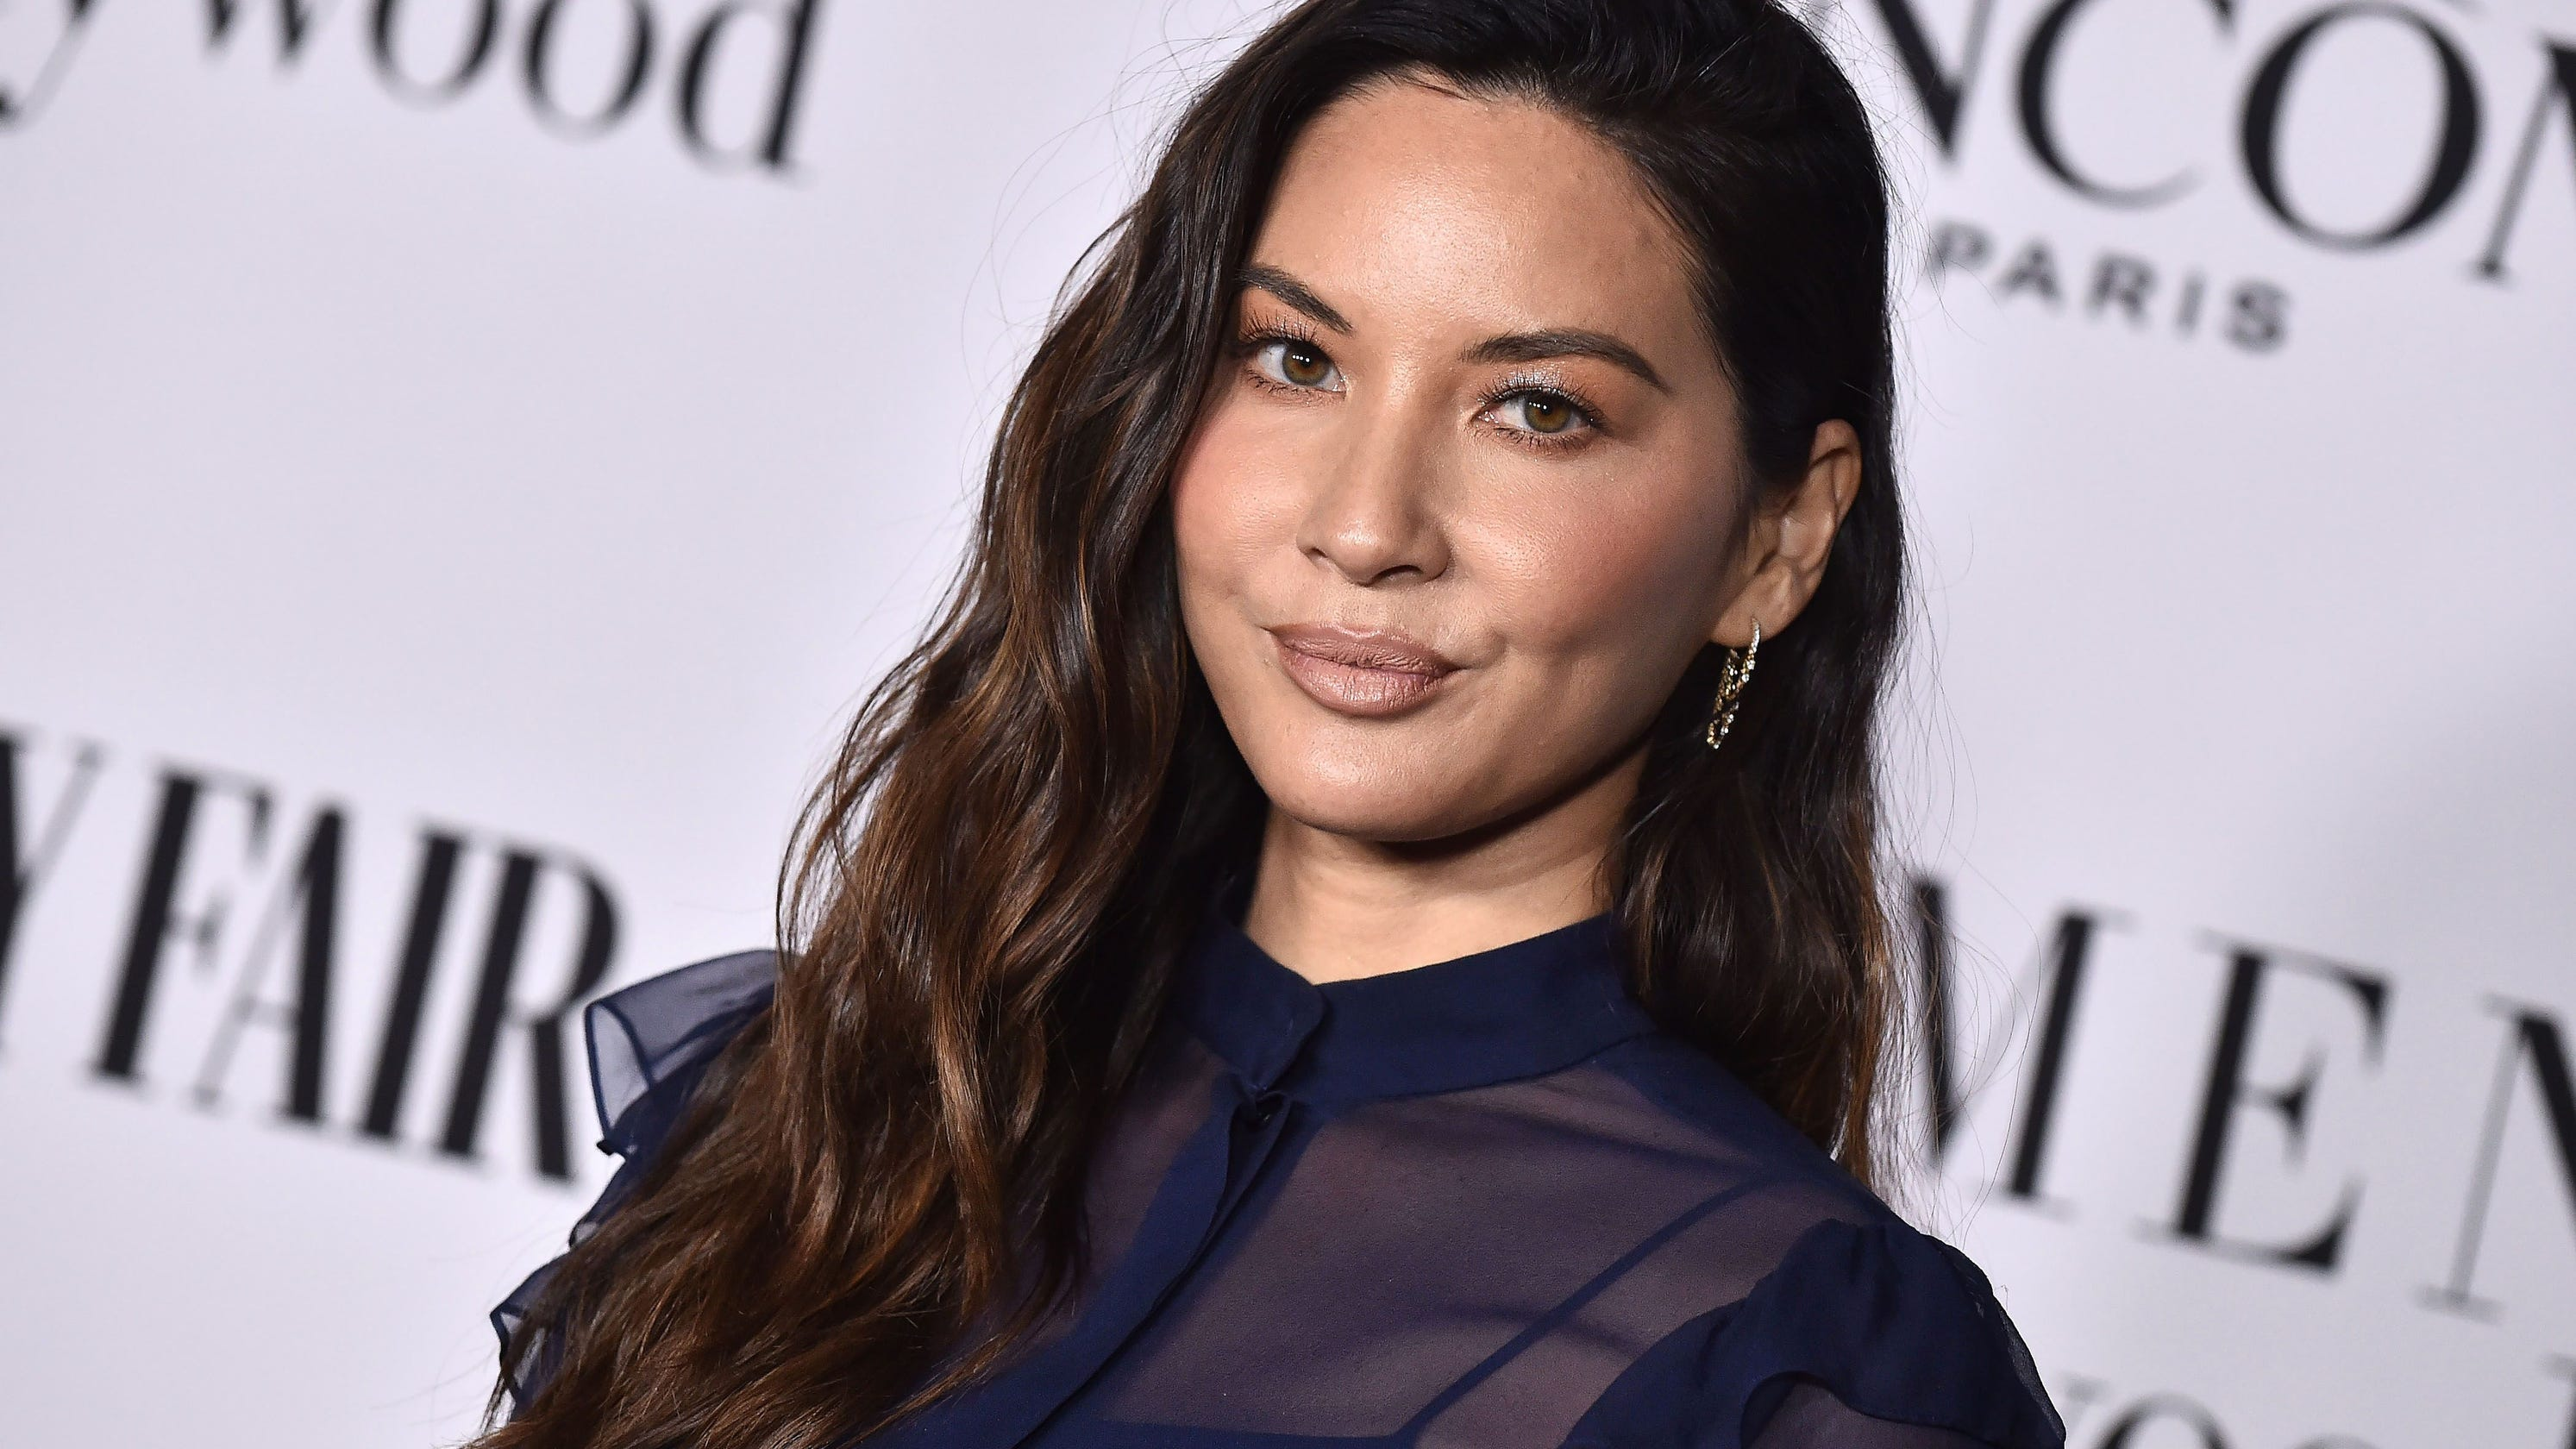 Olivia Munn, Ken Jeong 'remember the history of racism' against the Asian community in new PSA